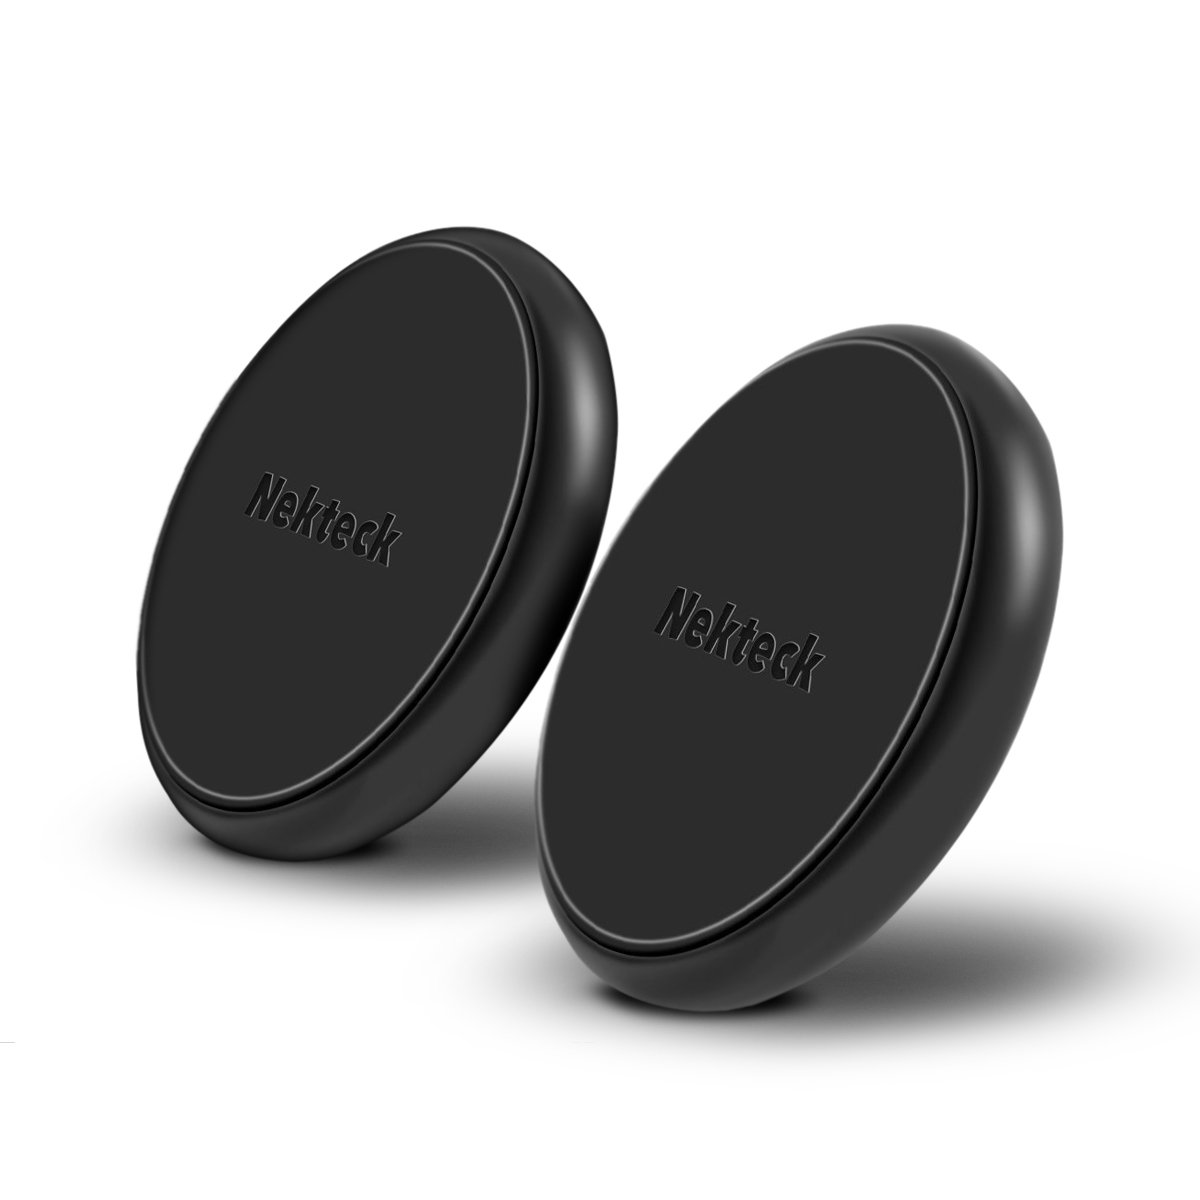 Nekteck Universal Stick on Flat Magnetic Car Mount Phone/Key Holder for iPhone X/8/7 6S/ 6 6 Plus, SE, Galaxy S9/S8 S6/S7 Note 9 8 5, LG G7 G6, Pixel 3/2 XL Nexus 6P 5X, Echo Dot More [2Pack]